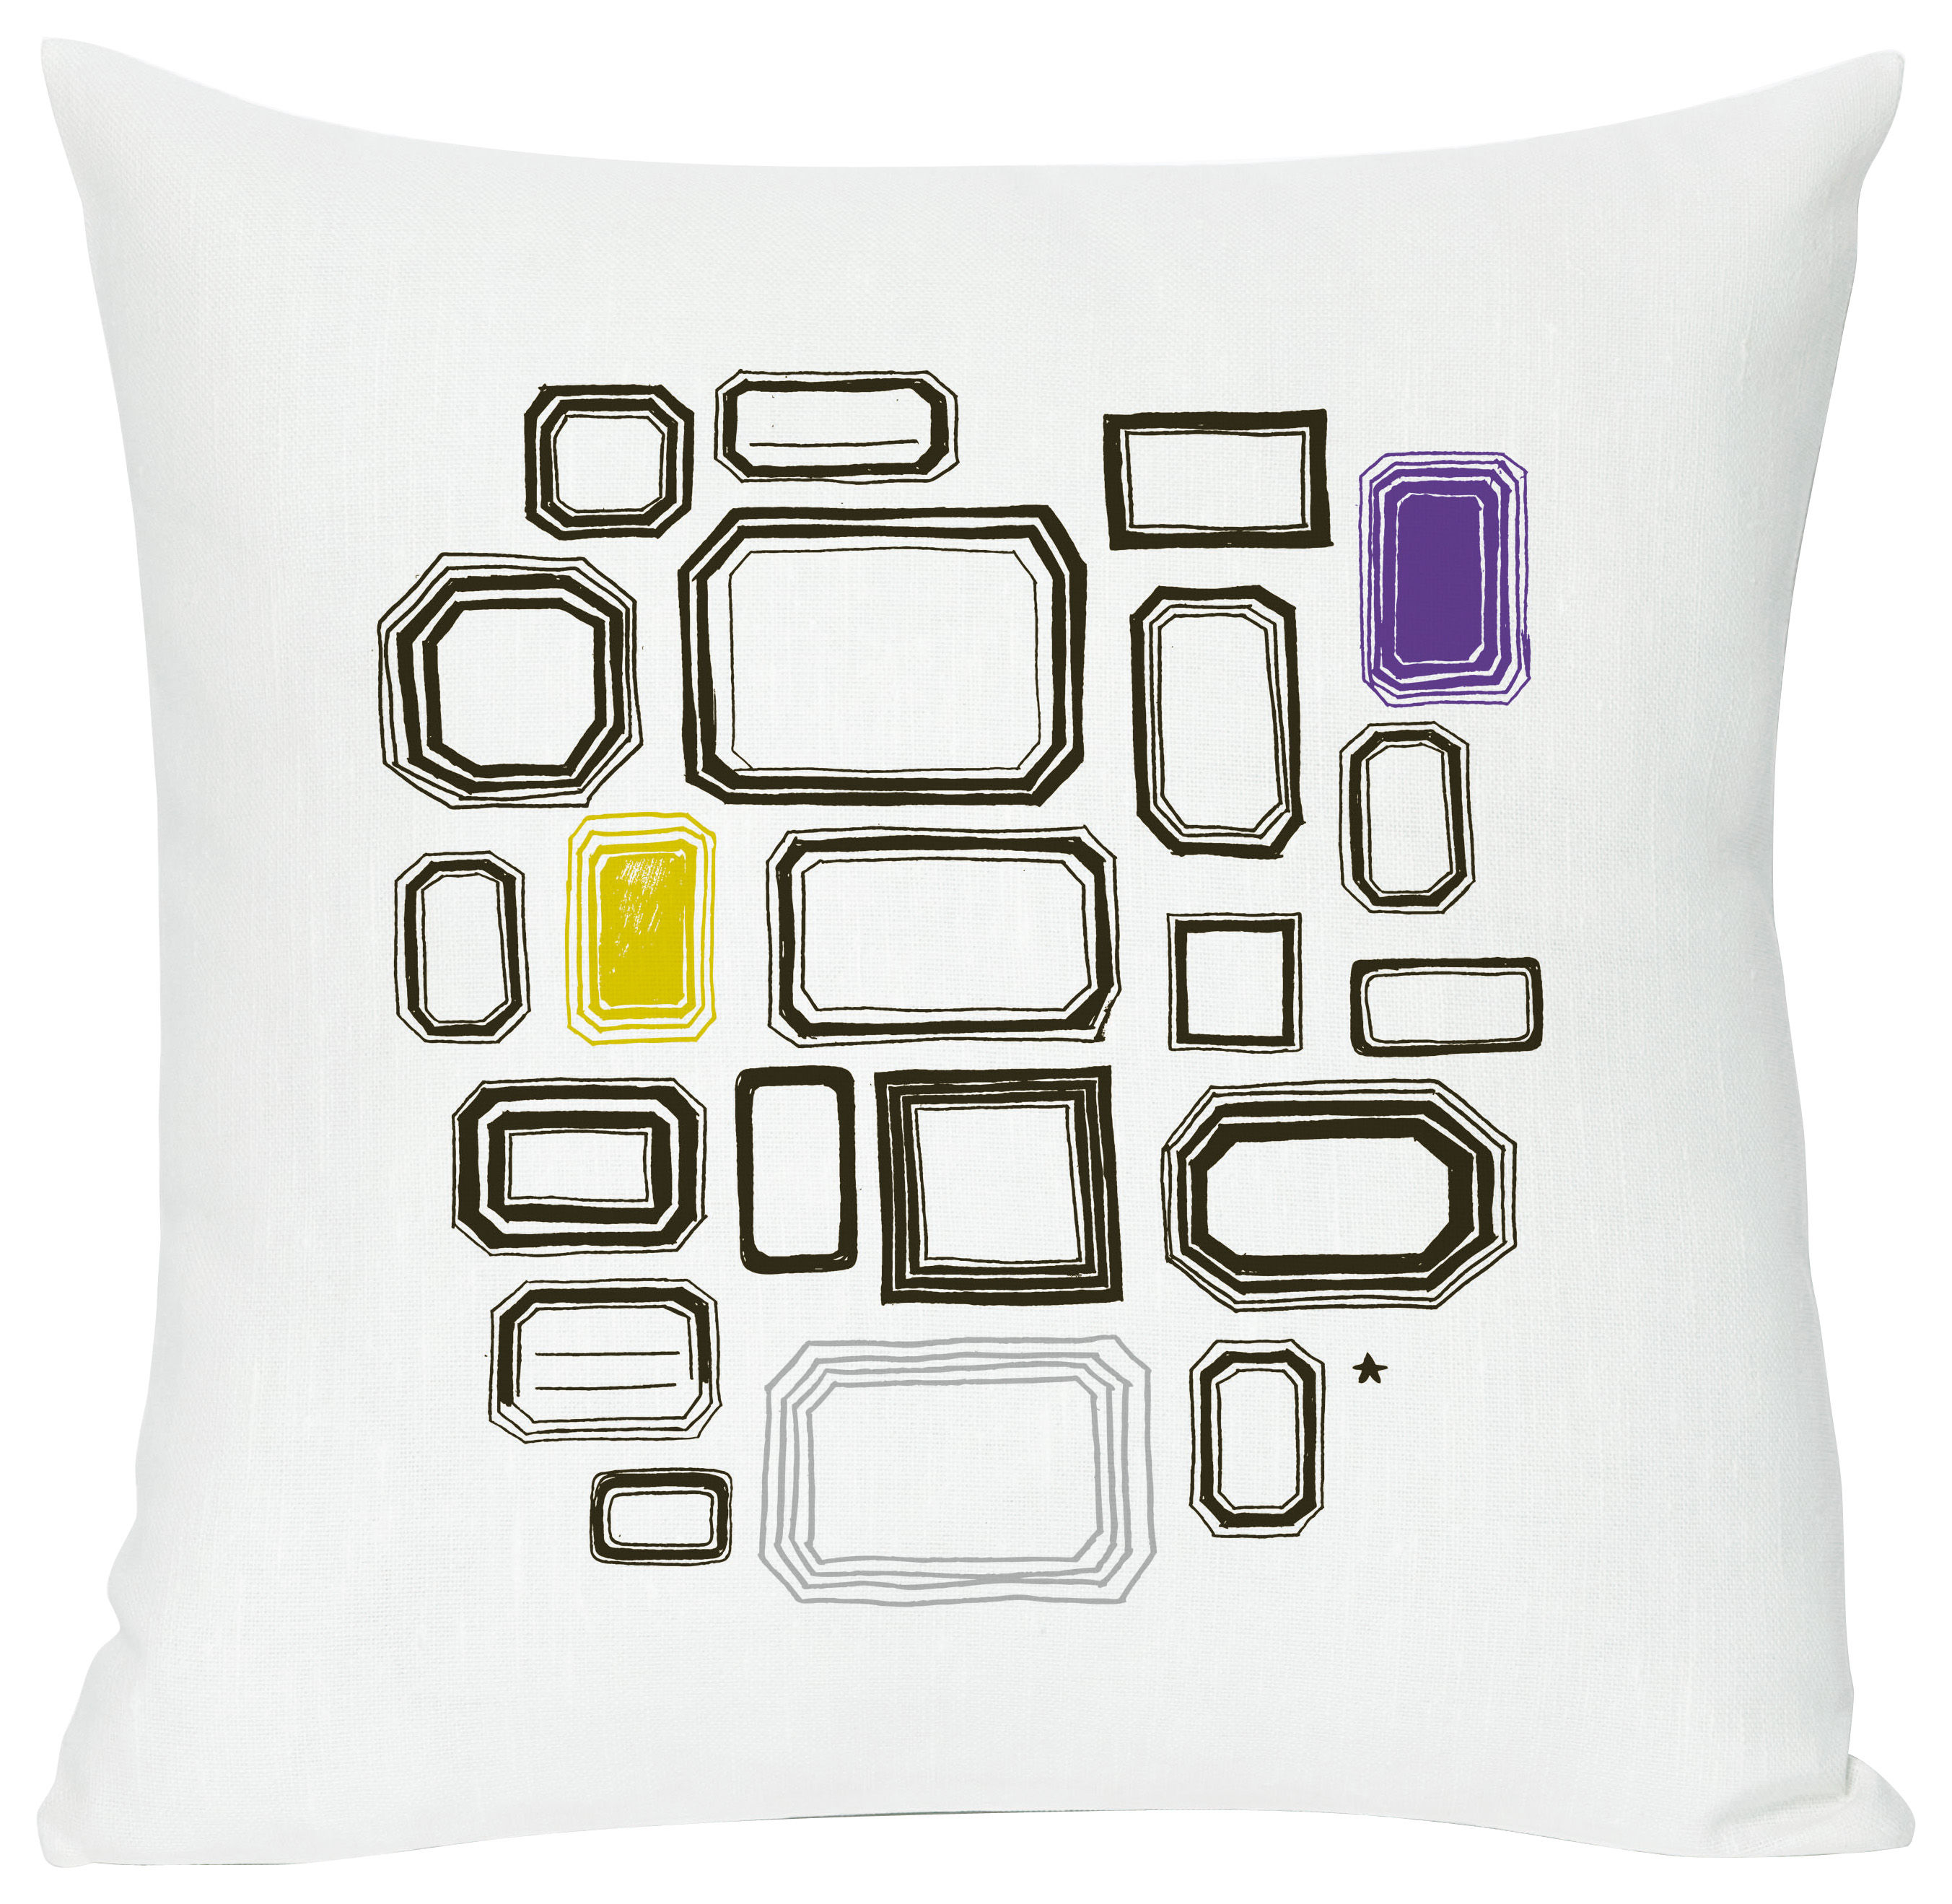 Decoration - Children's Home Accessories - Coll print Cushion - Screen printed cushion made of linen & cotton by Domestic - Coll print - White, black, purple & yellow - Cotton, Linen